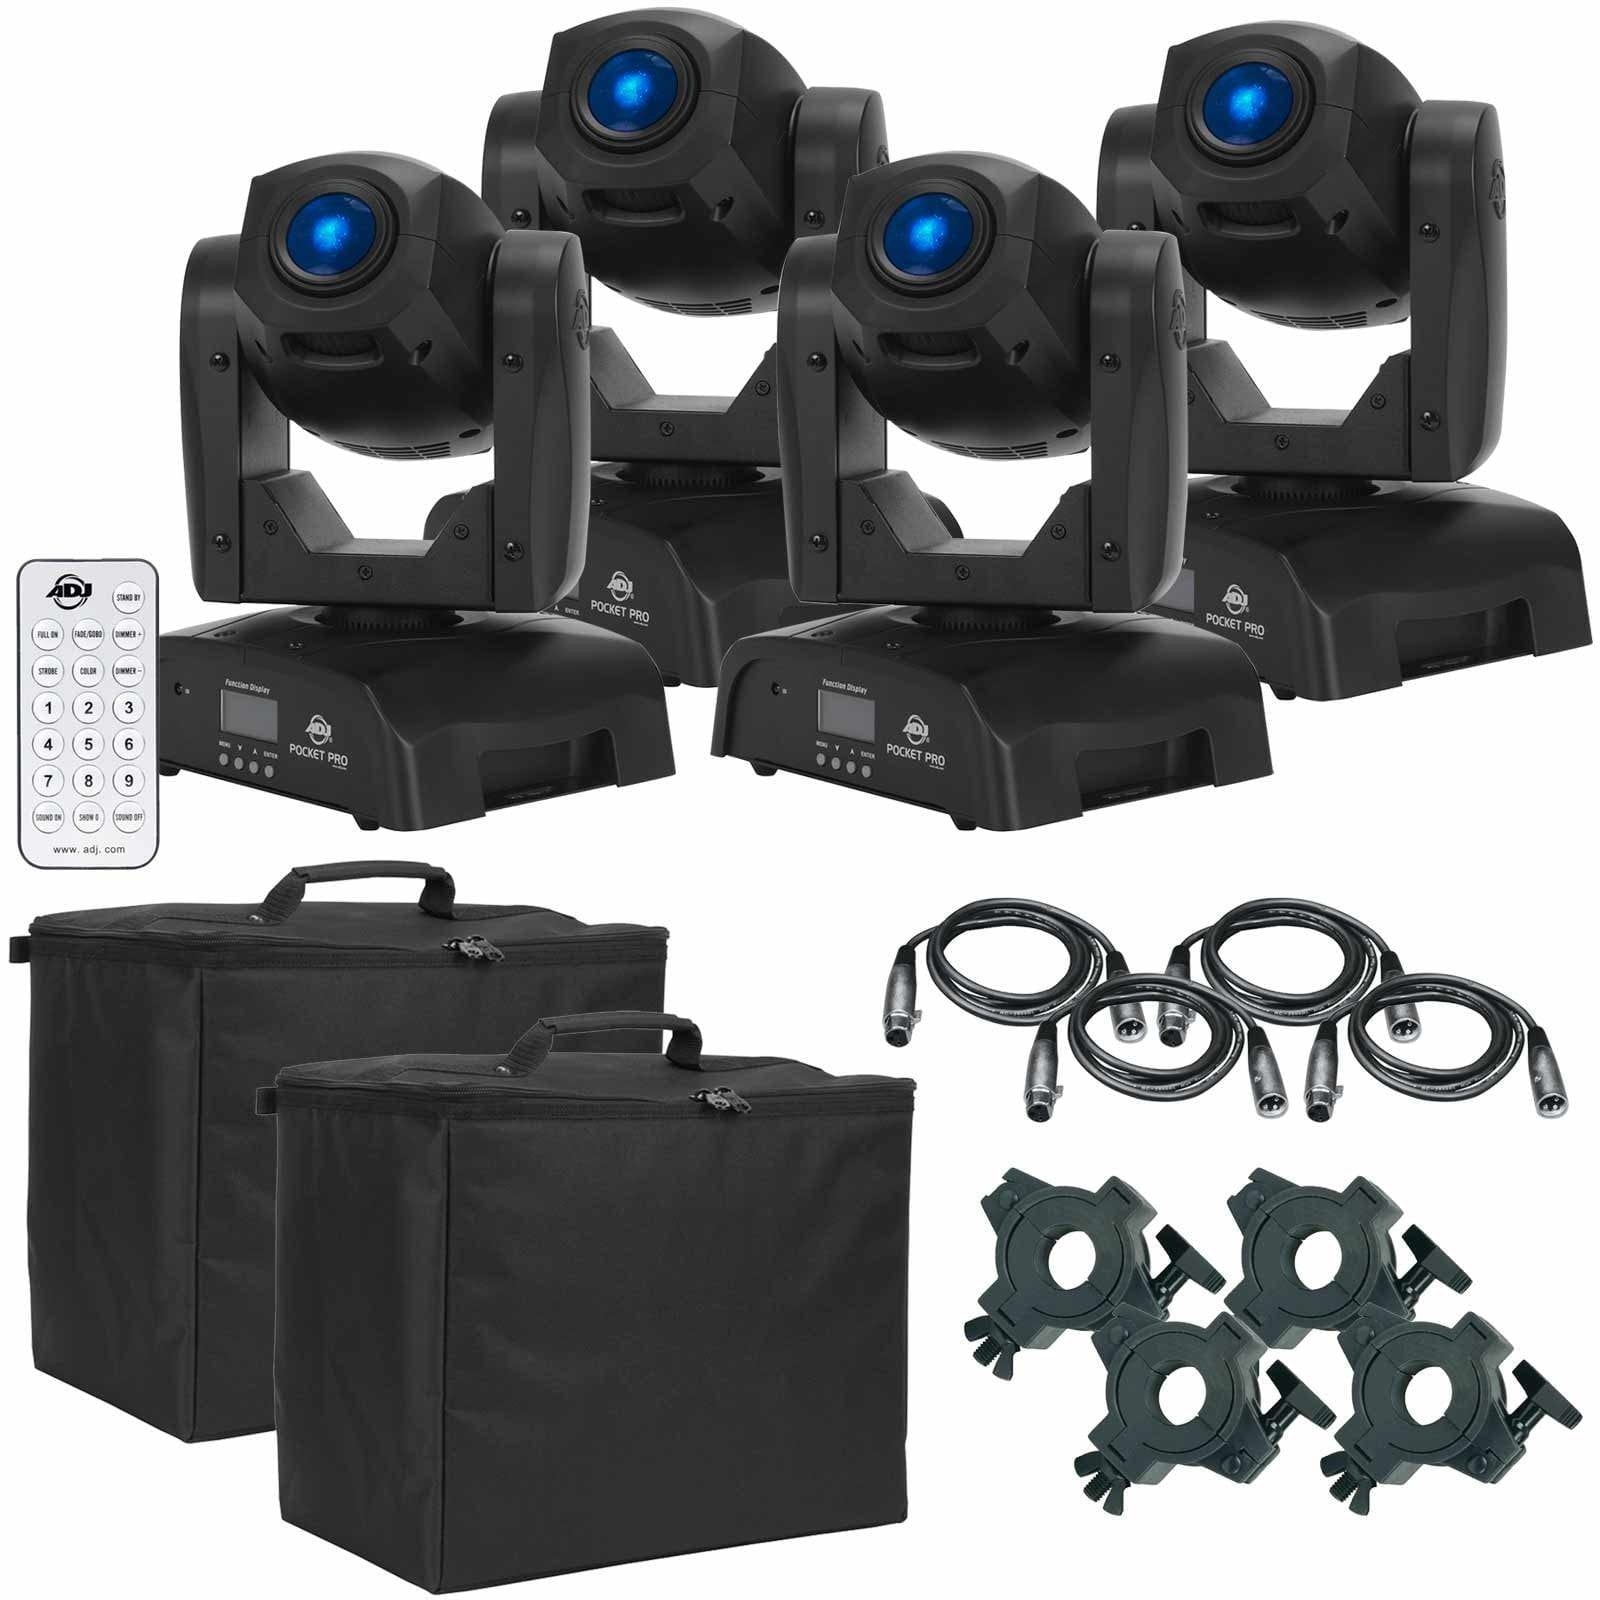 4-american-dj-pocket-pro-high-output-mini-moving-heads-with-uc-ir-universal-remote-control-package-0